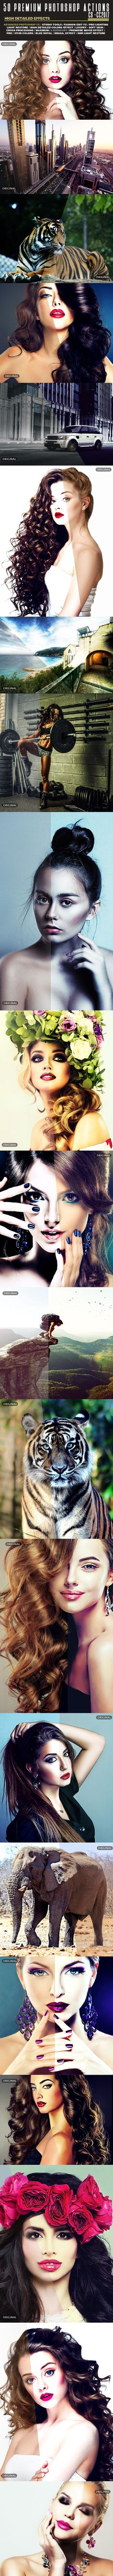 50 Premium Photoshop Actions - Photo Effects Actions Creative Photoshop, Photoshop Photos, Photography Tools, Photoshop Photography, Effects Photoshop, Photoshop Actions, Photo Effects, Photoshop Tutorial, Fashion Glamour